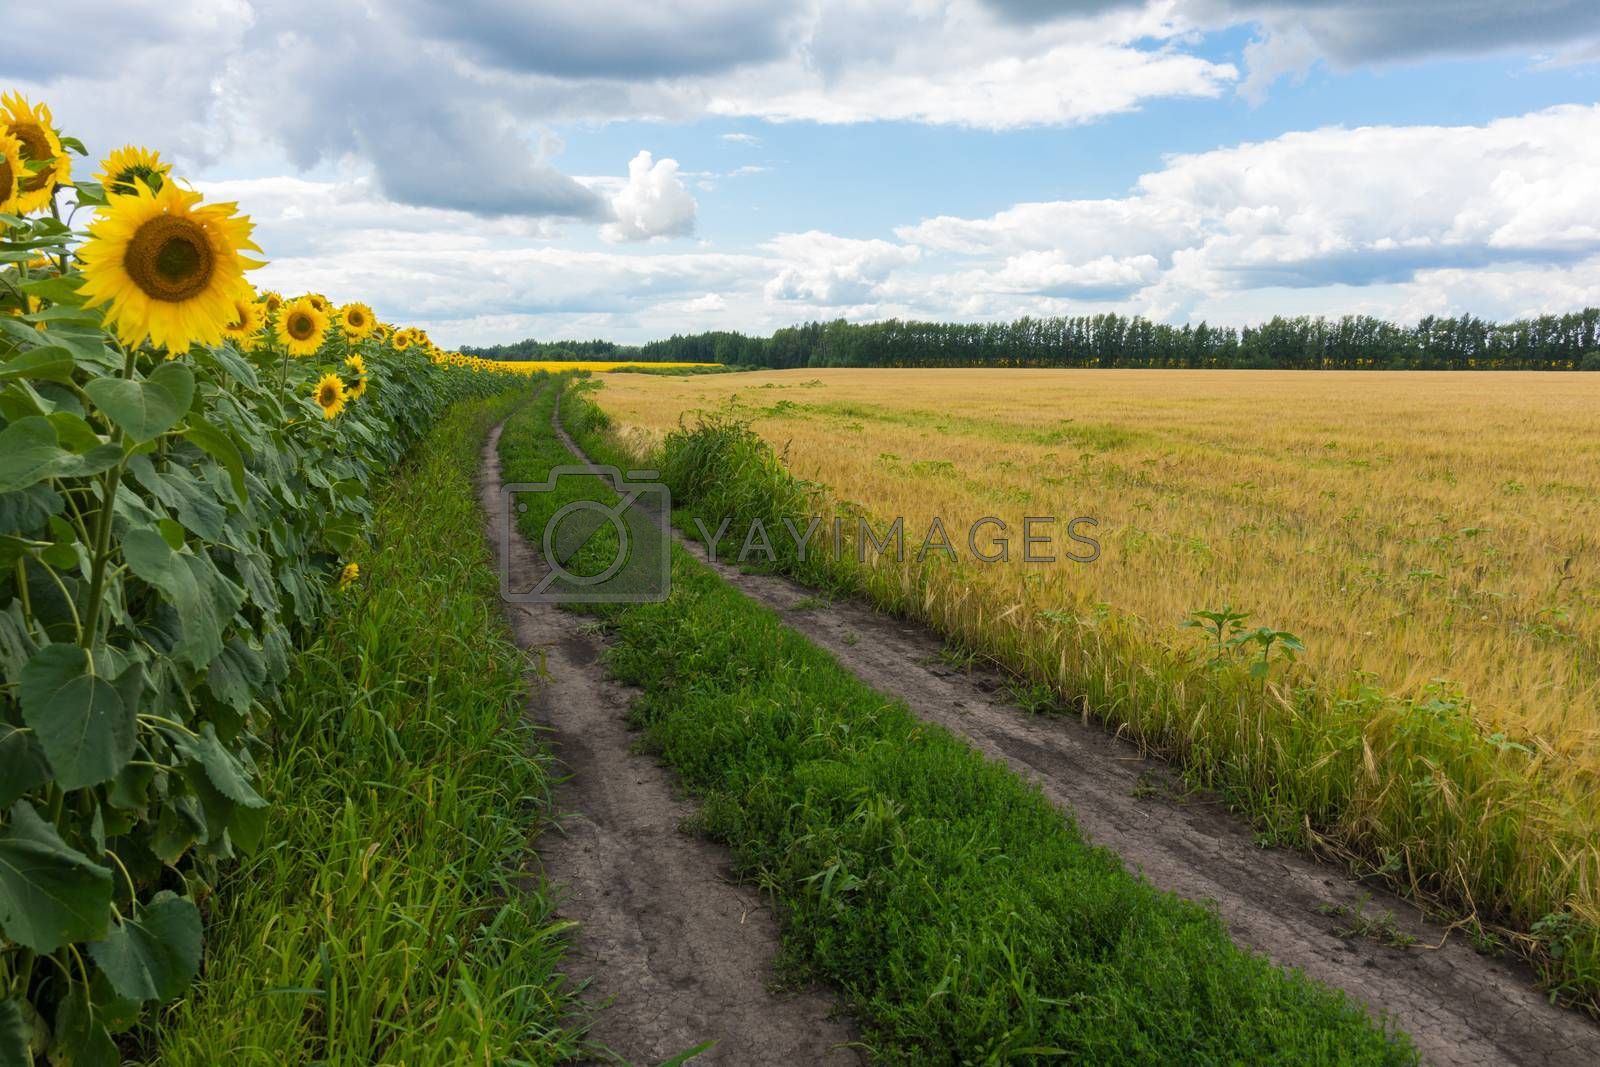 The photo shows a field of sunflowers and the road running along it